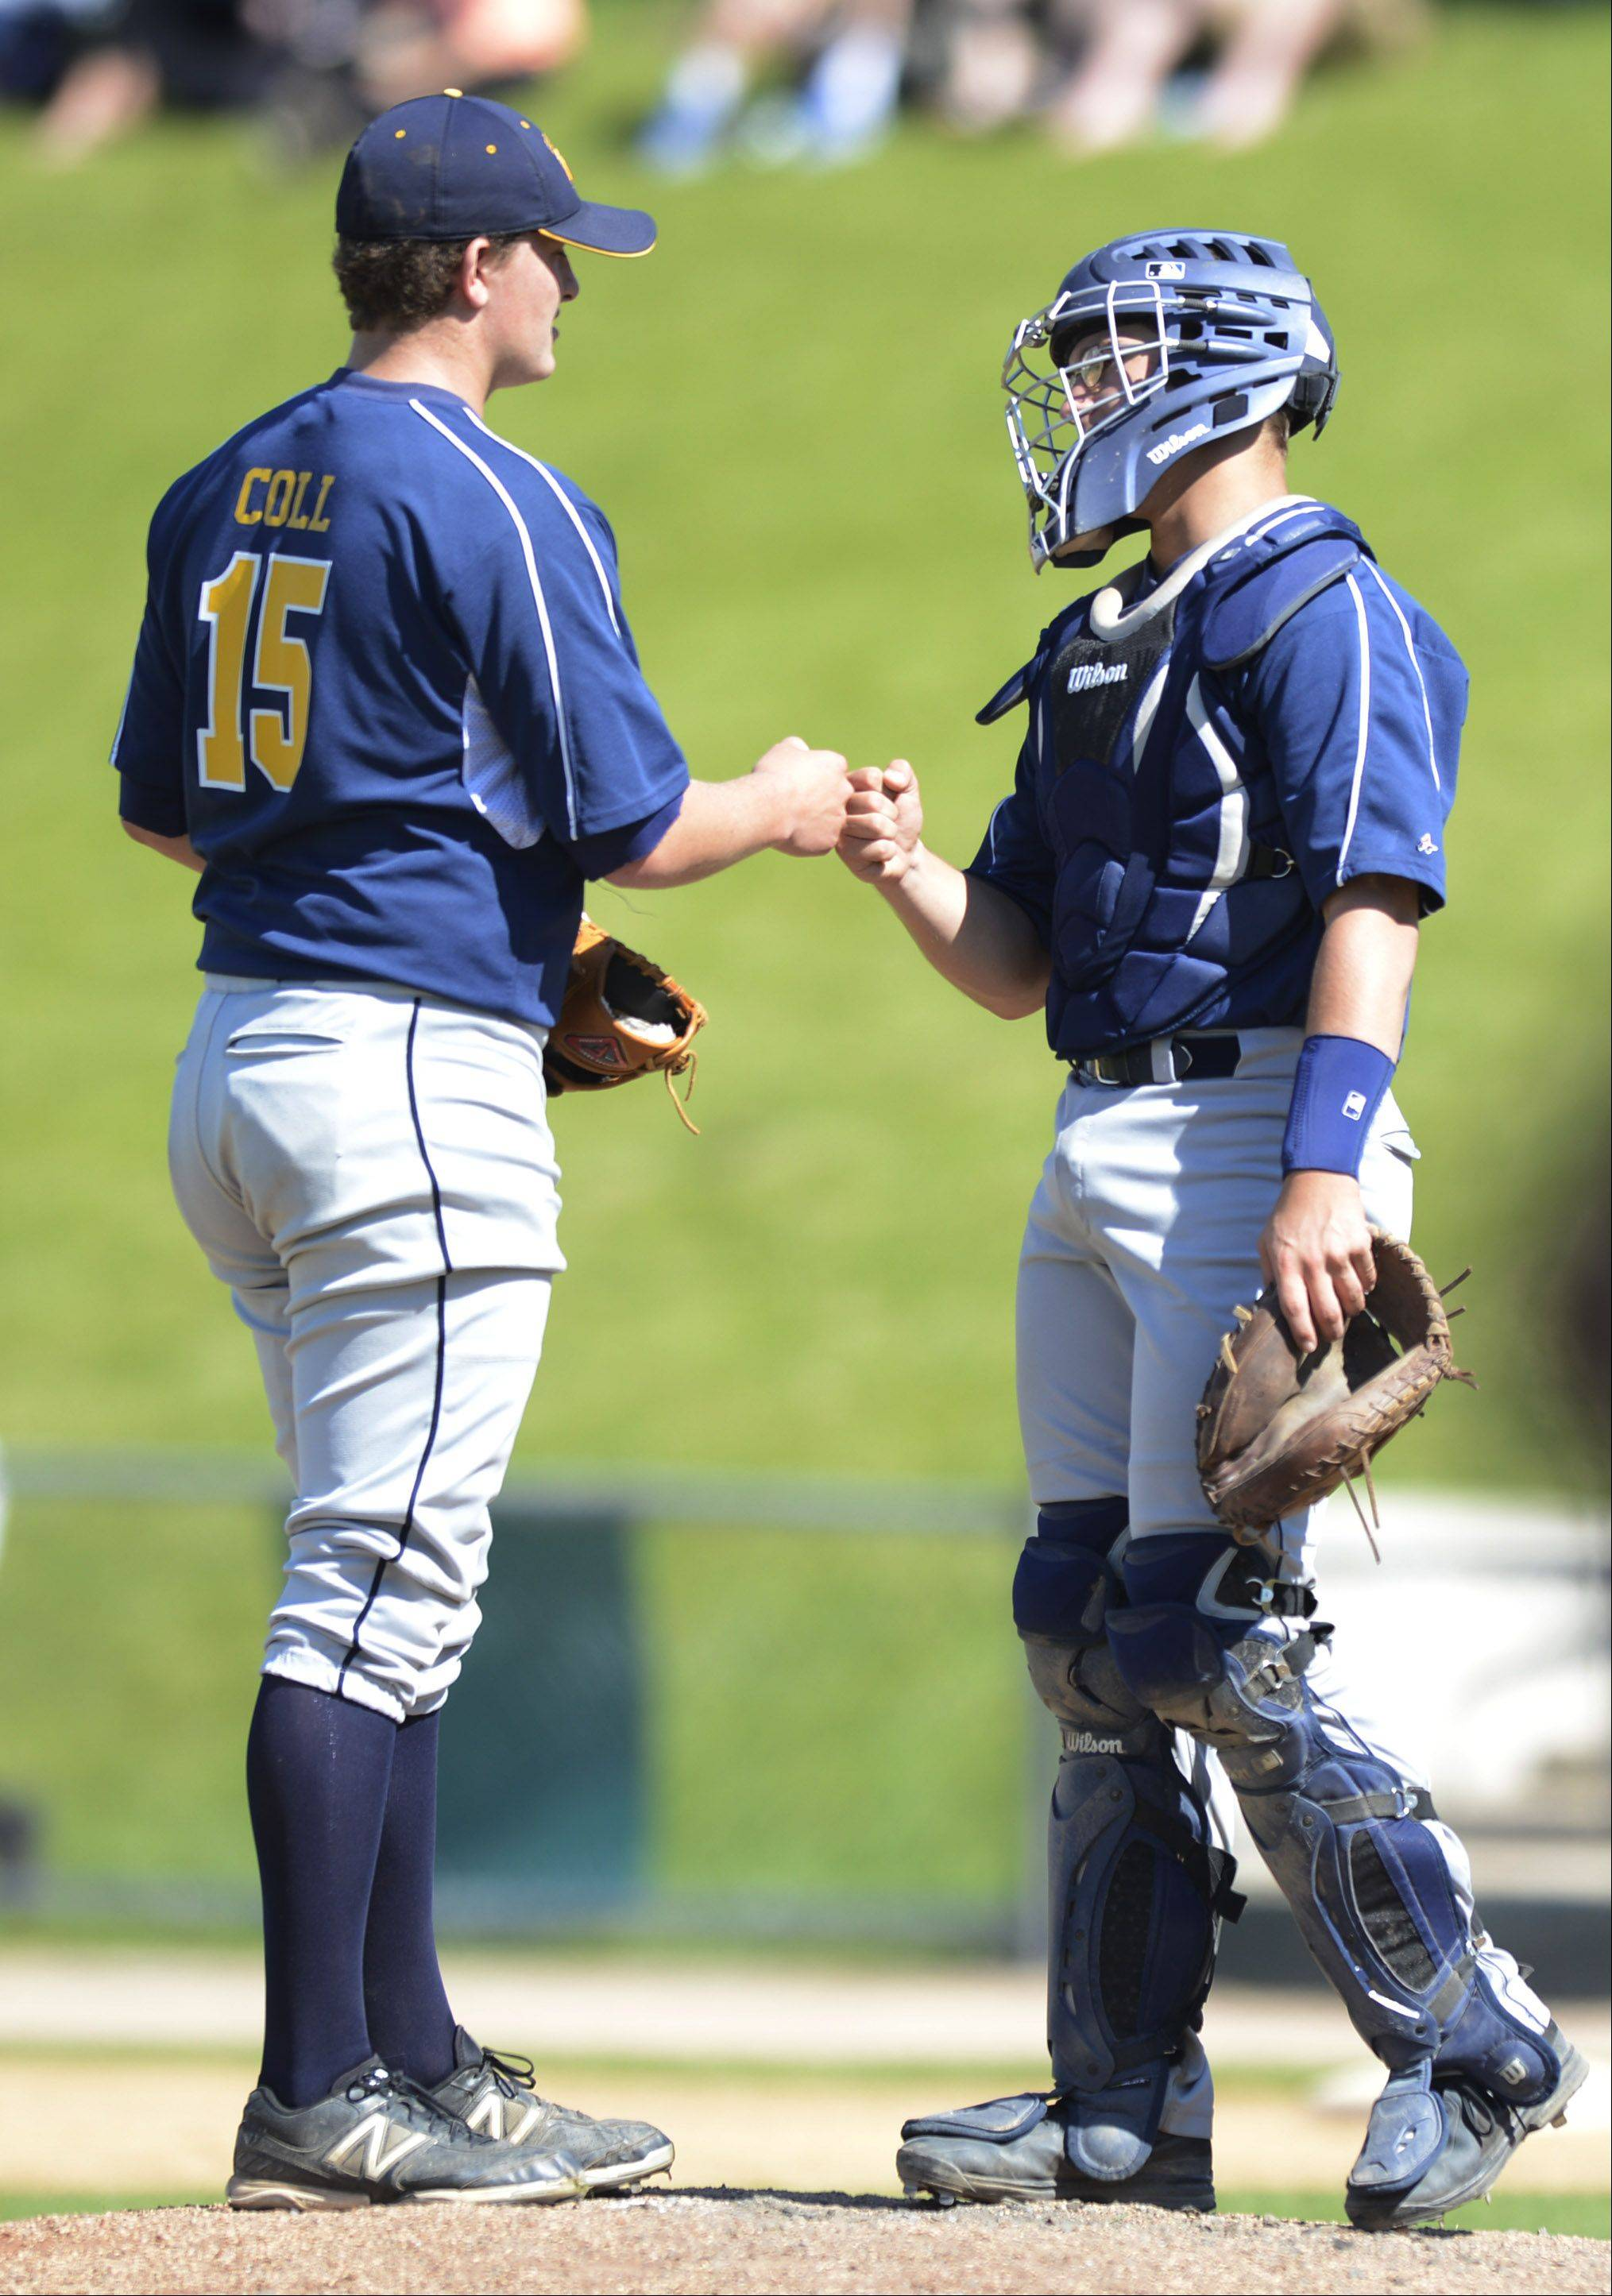 Neuqua Valley pitcher Cody Coll gets a fist bump from catcher Alex Wolanski during the Class 4A state baseball semifinals against Mt. Careml at Silver Cross Field in Joliet Friday.